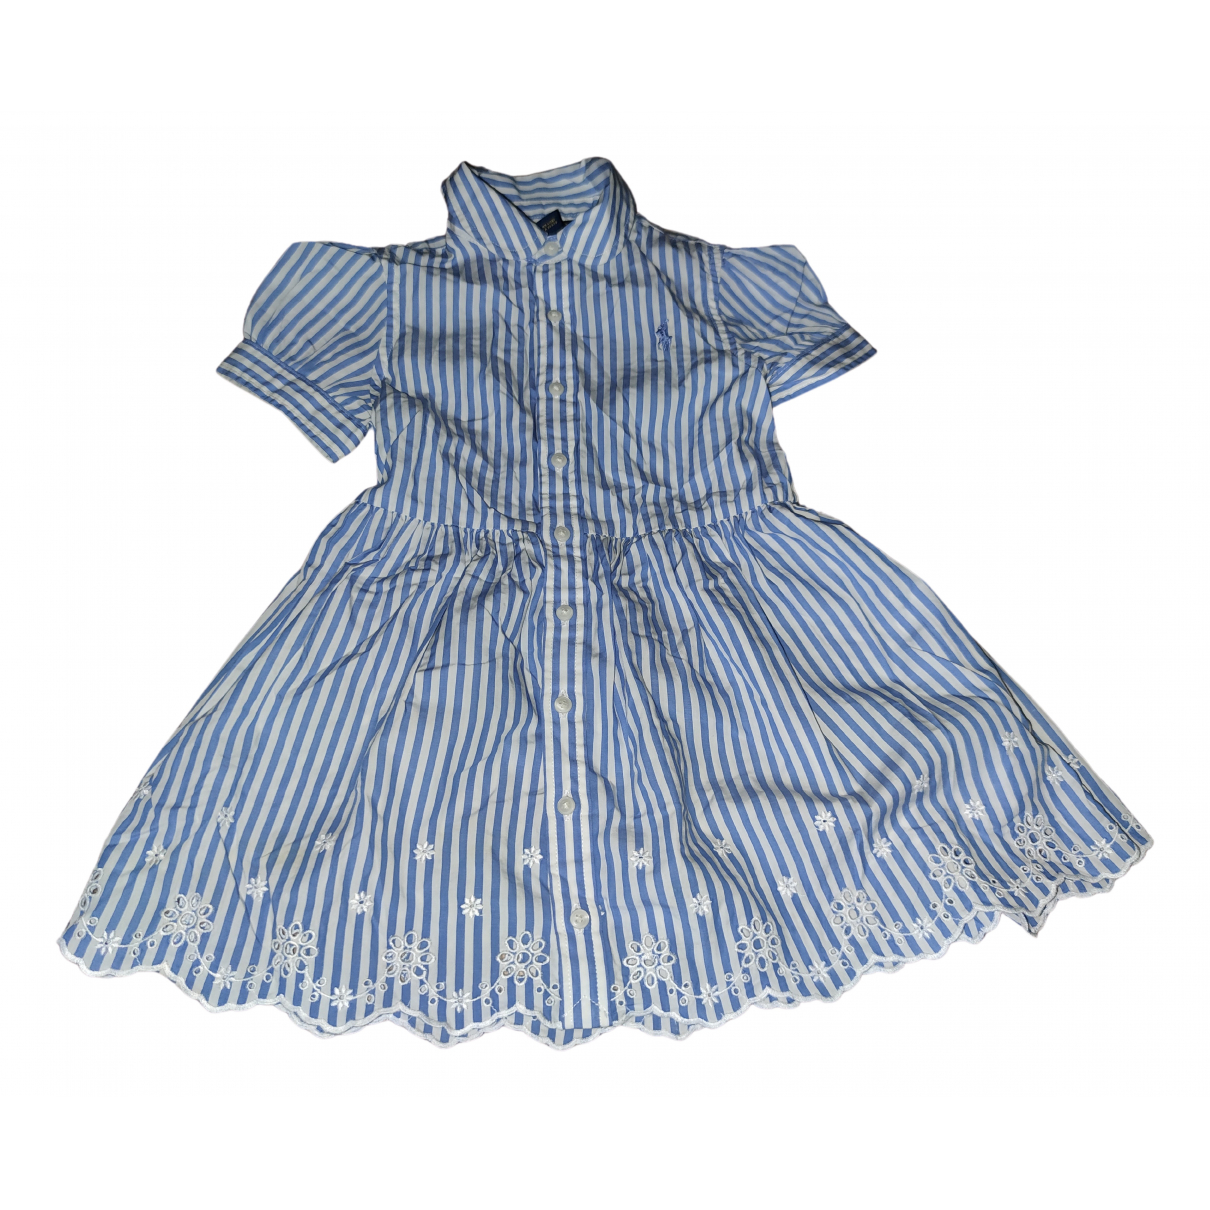 Polo Ralph Lauren N Turquoise Cotton dress for Kids 2 years - until 34 inches UK